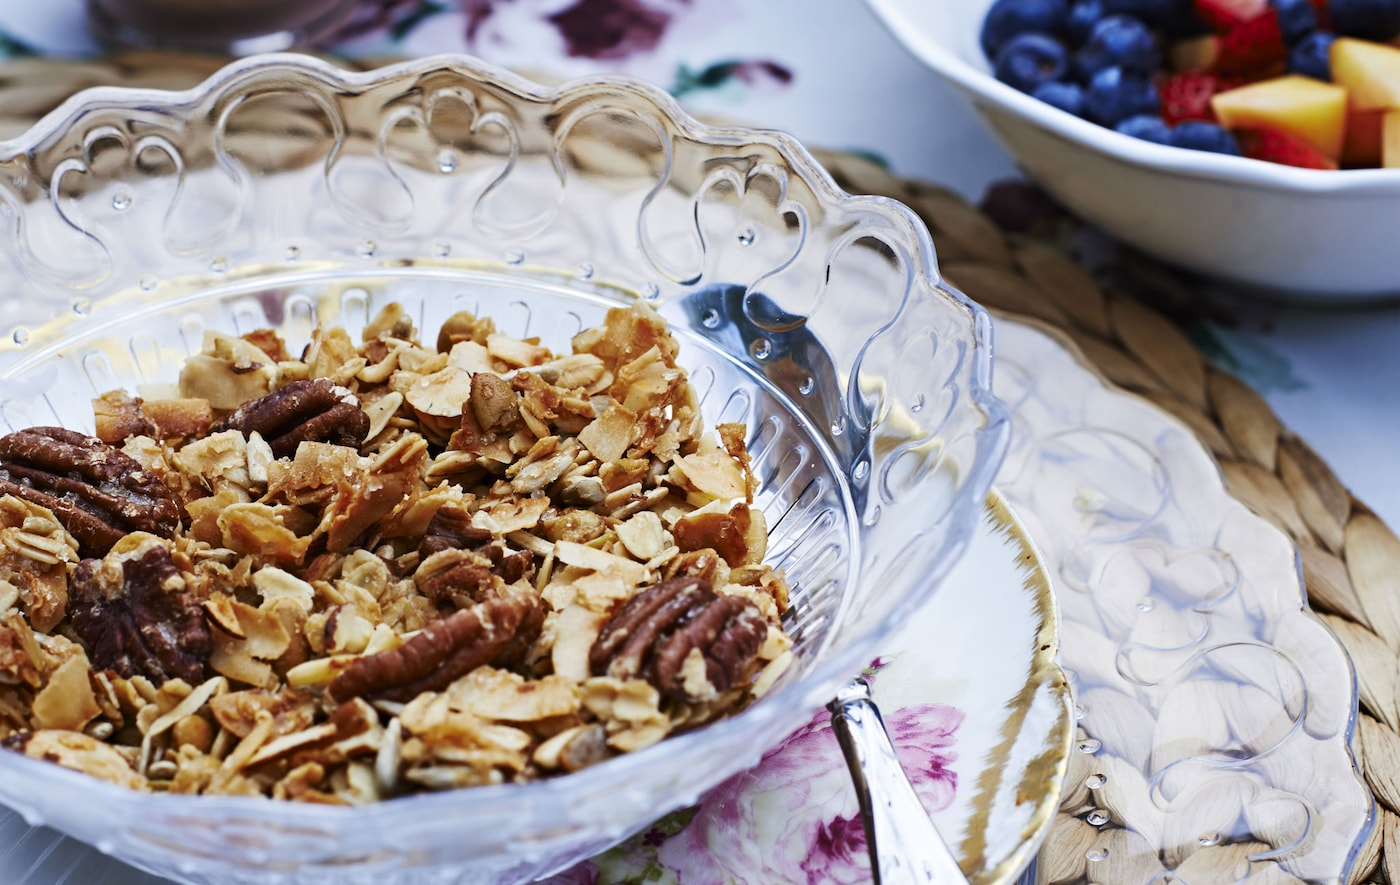 Start the day with tasty, homemade granola